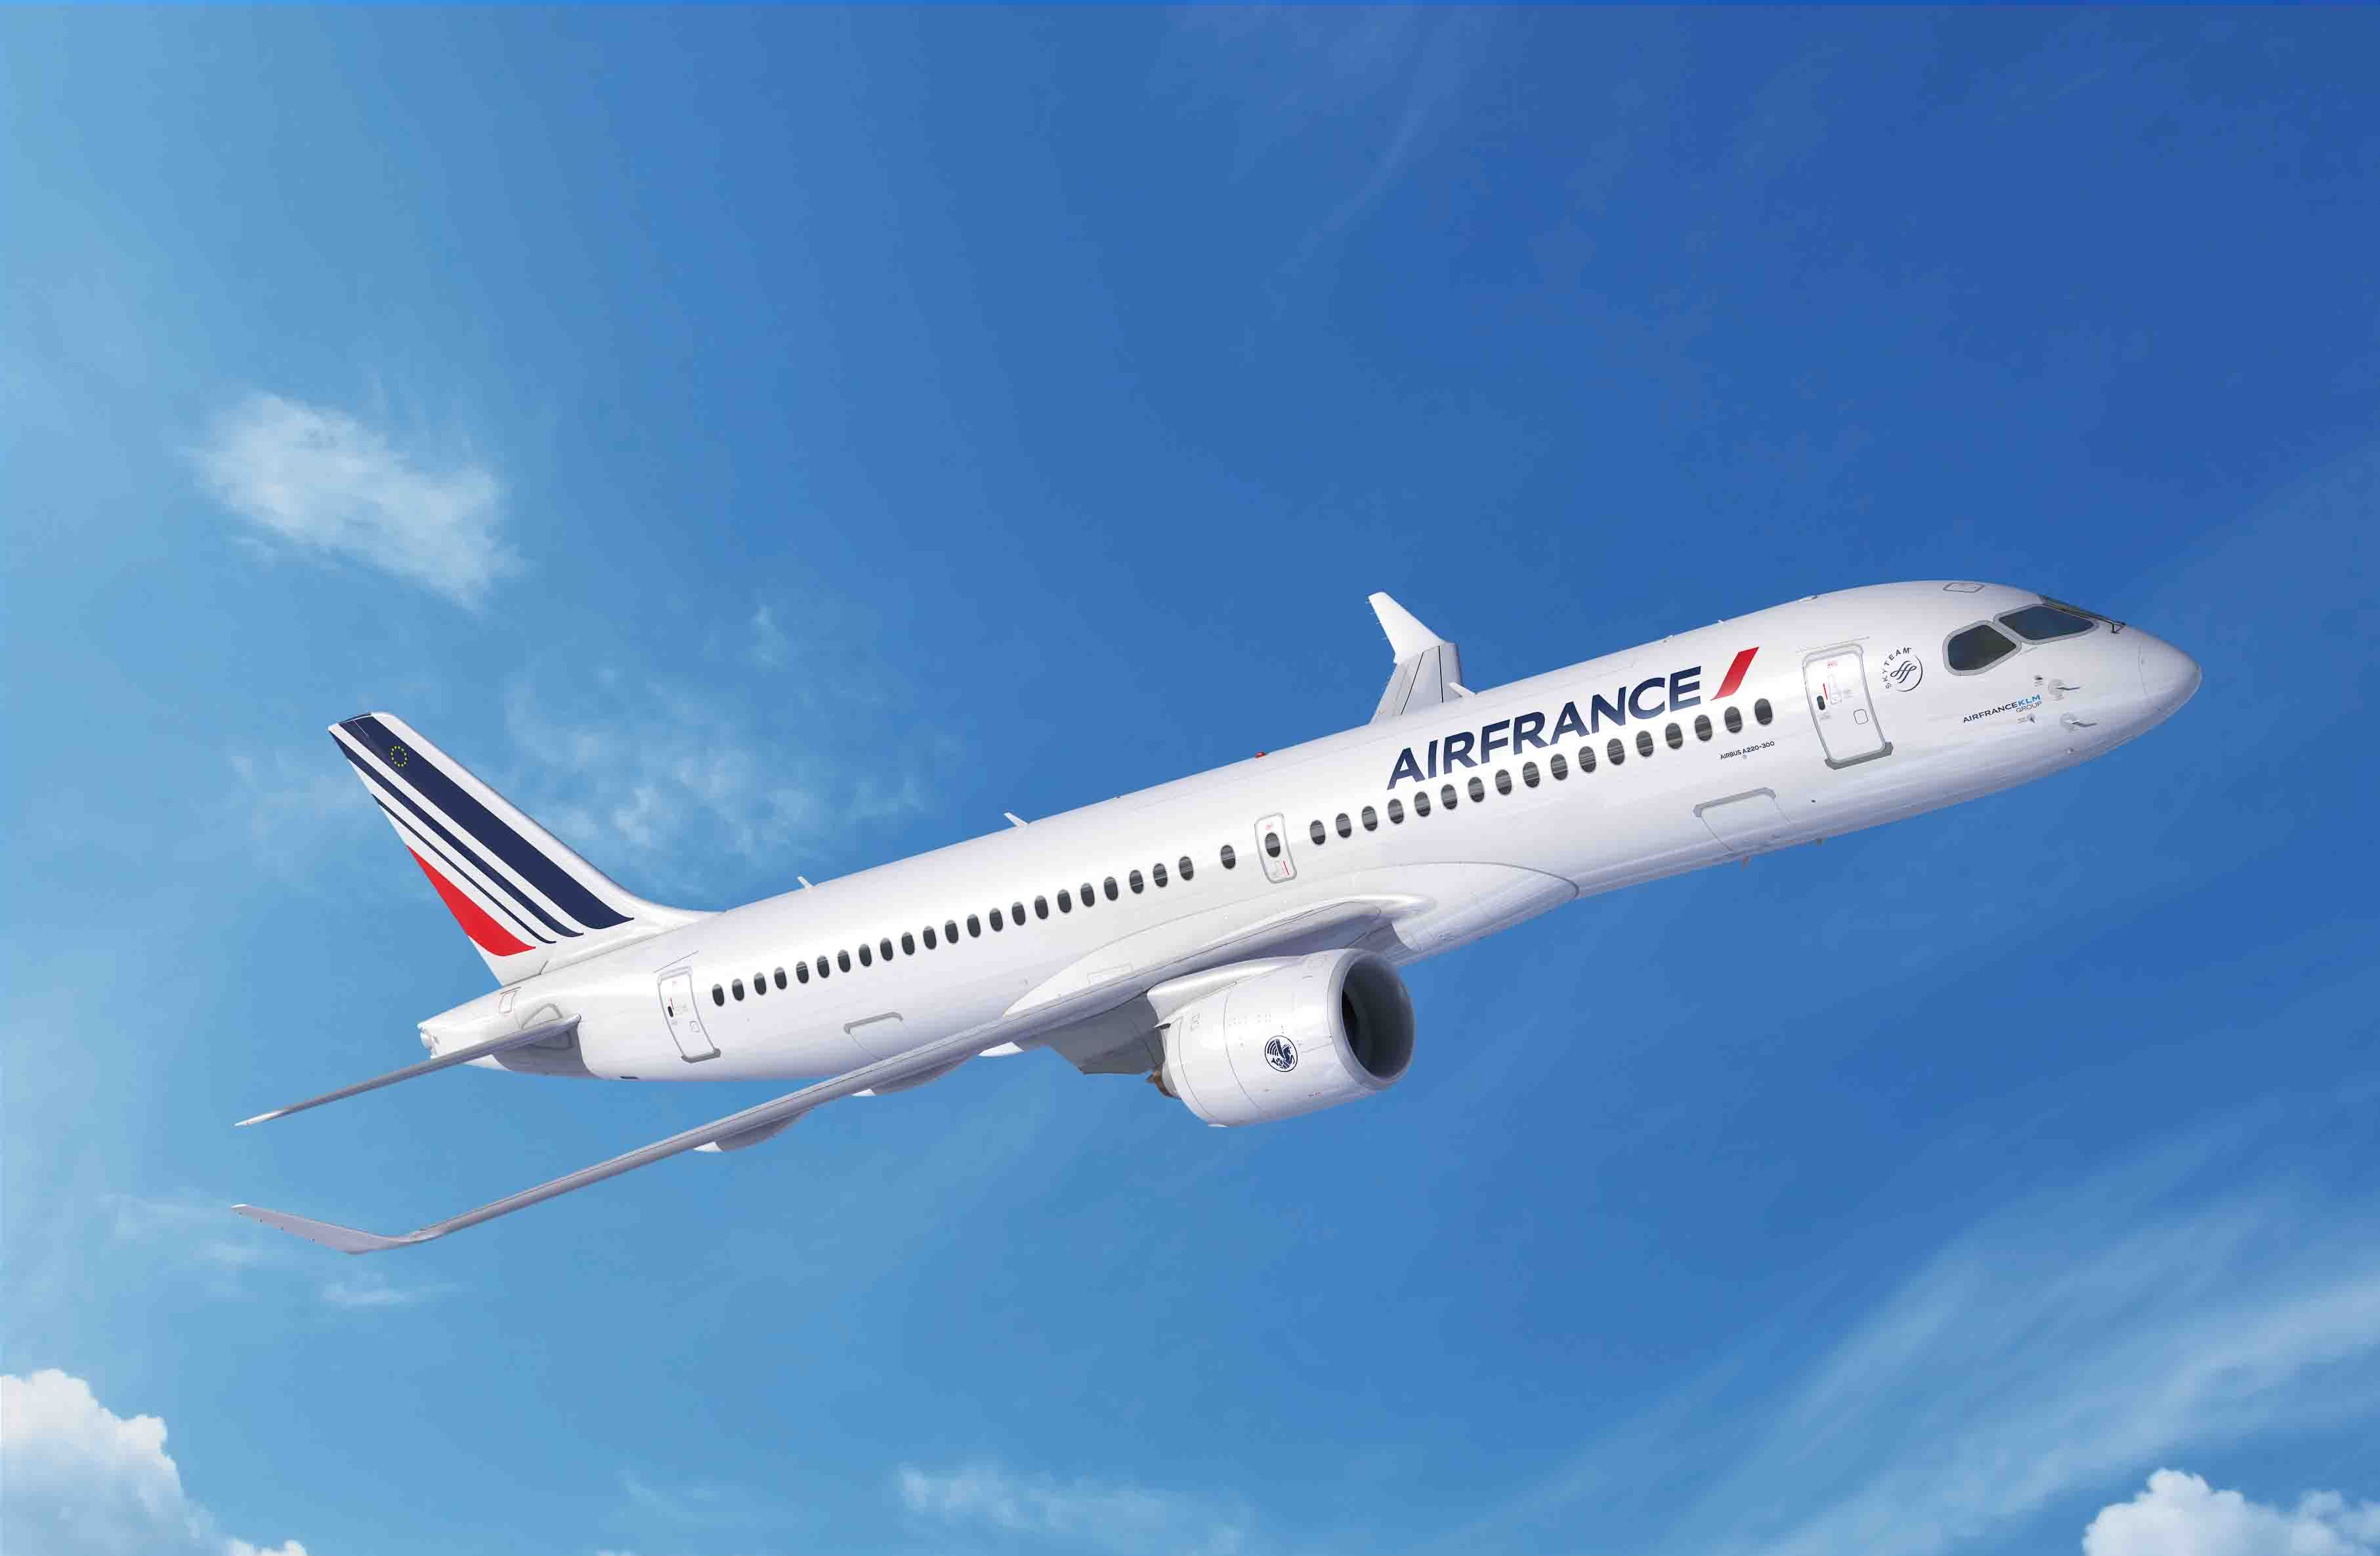 Airbus A220-300 i den kommende Air France-version. (Foto: Airbus | FIXION | dreamstime.com)